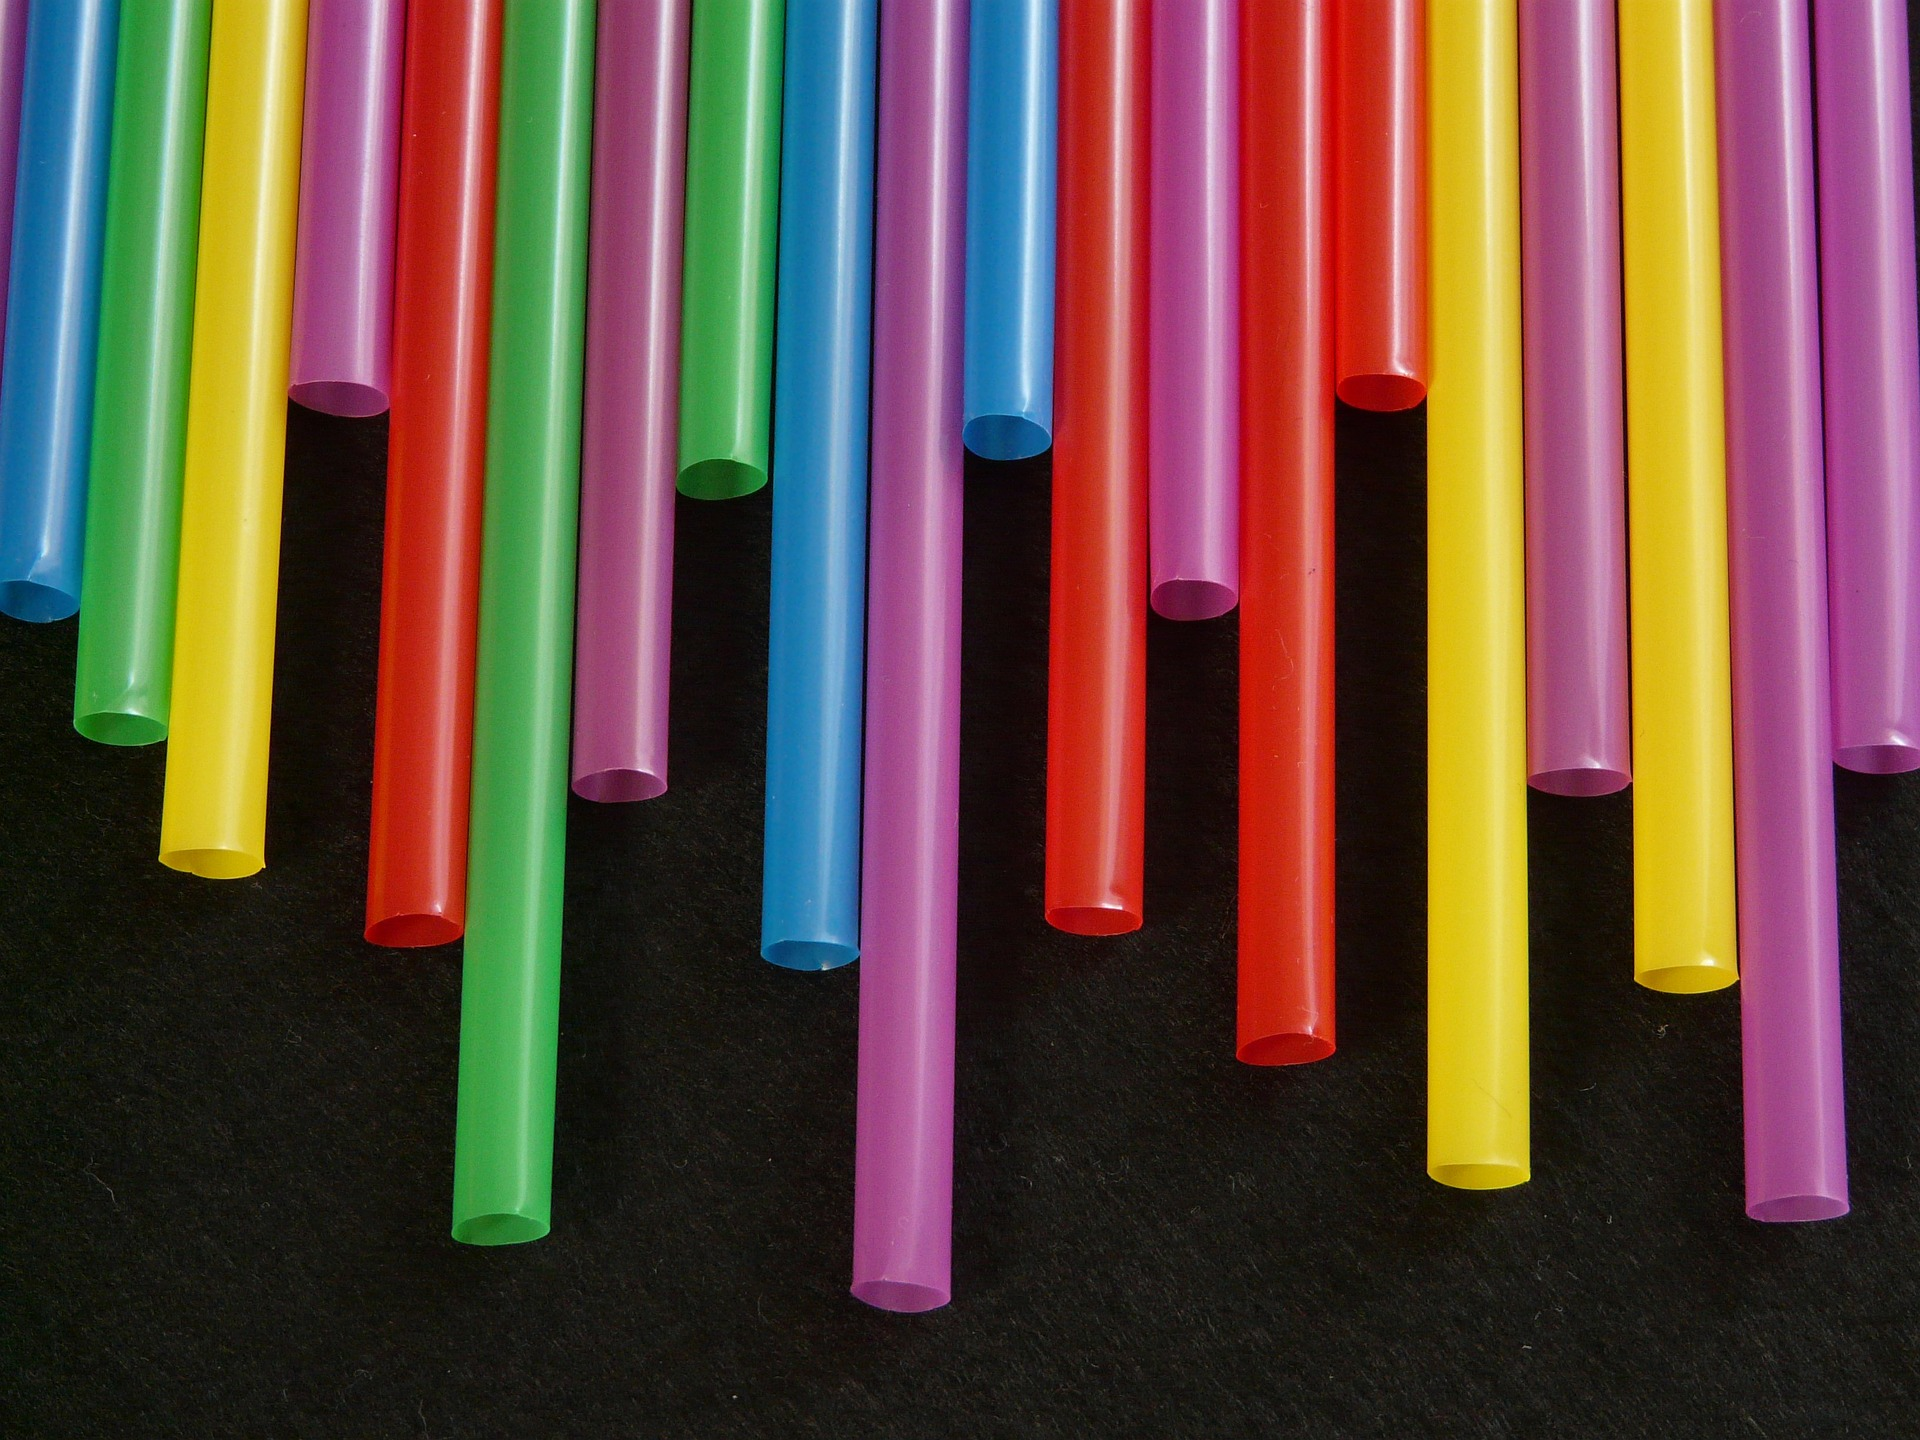 Removing plastic straws was the first of many steps Lauren took to reduce her impact on our planet. Image Credit:  Plastic straws  by  Hans  ( Pixabay Licence ).